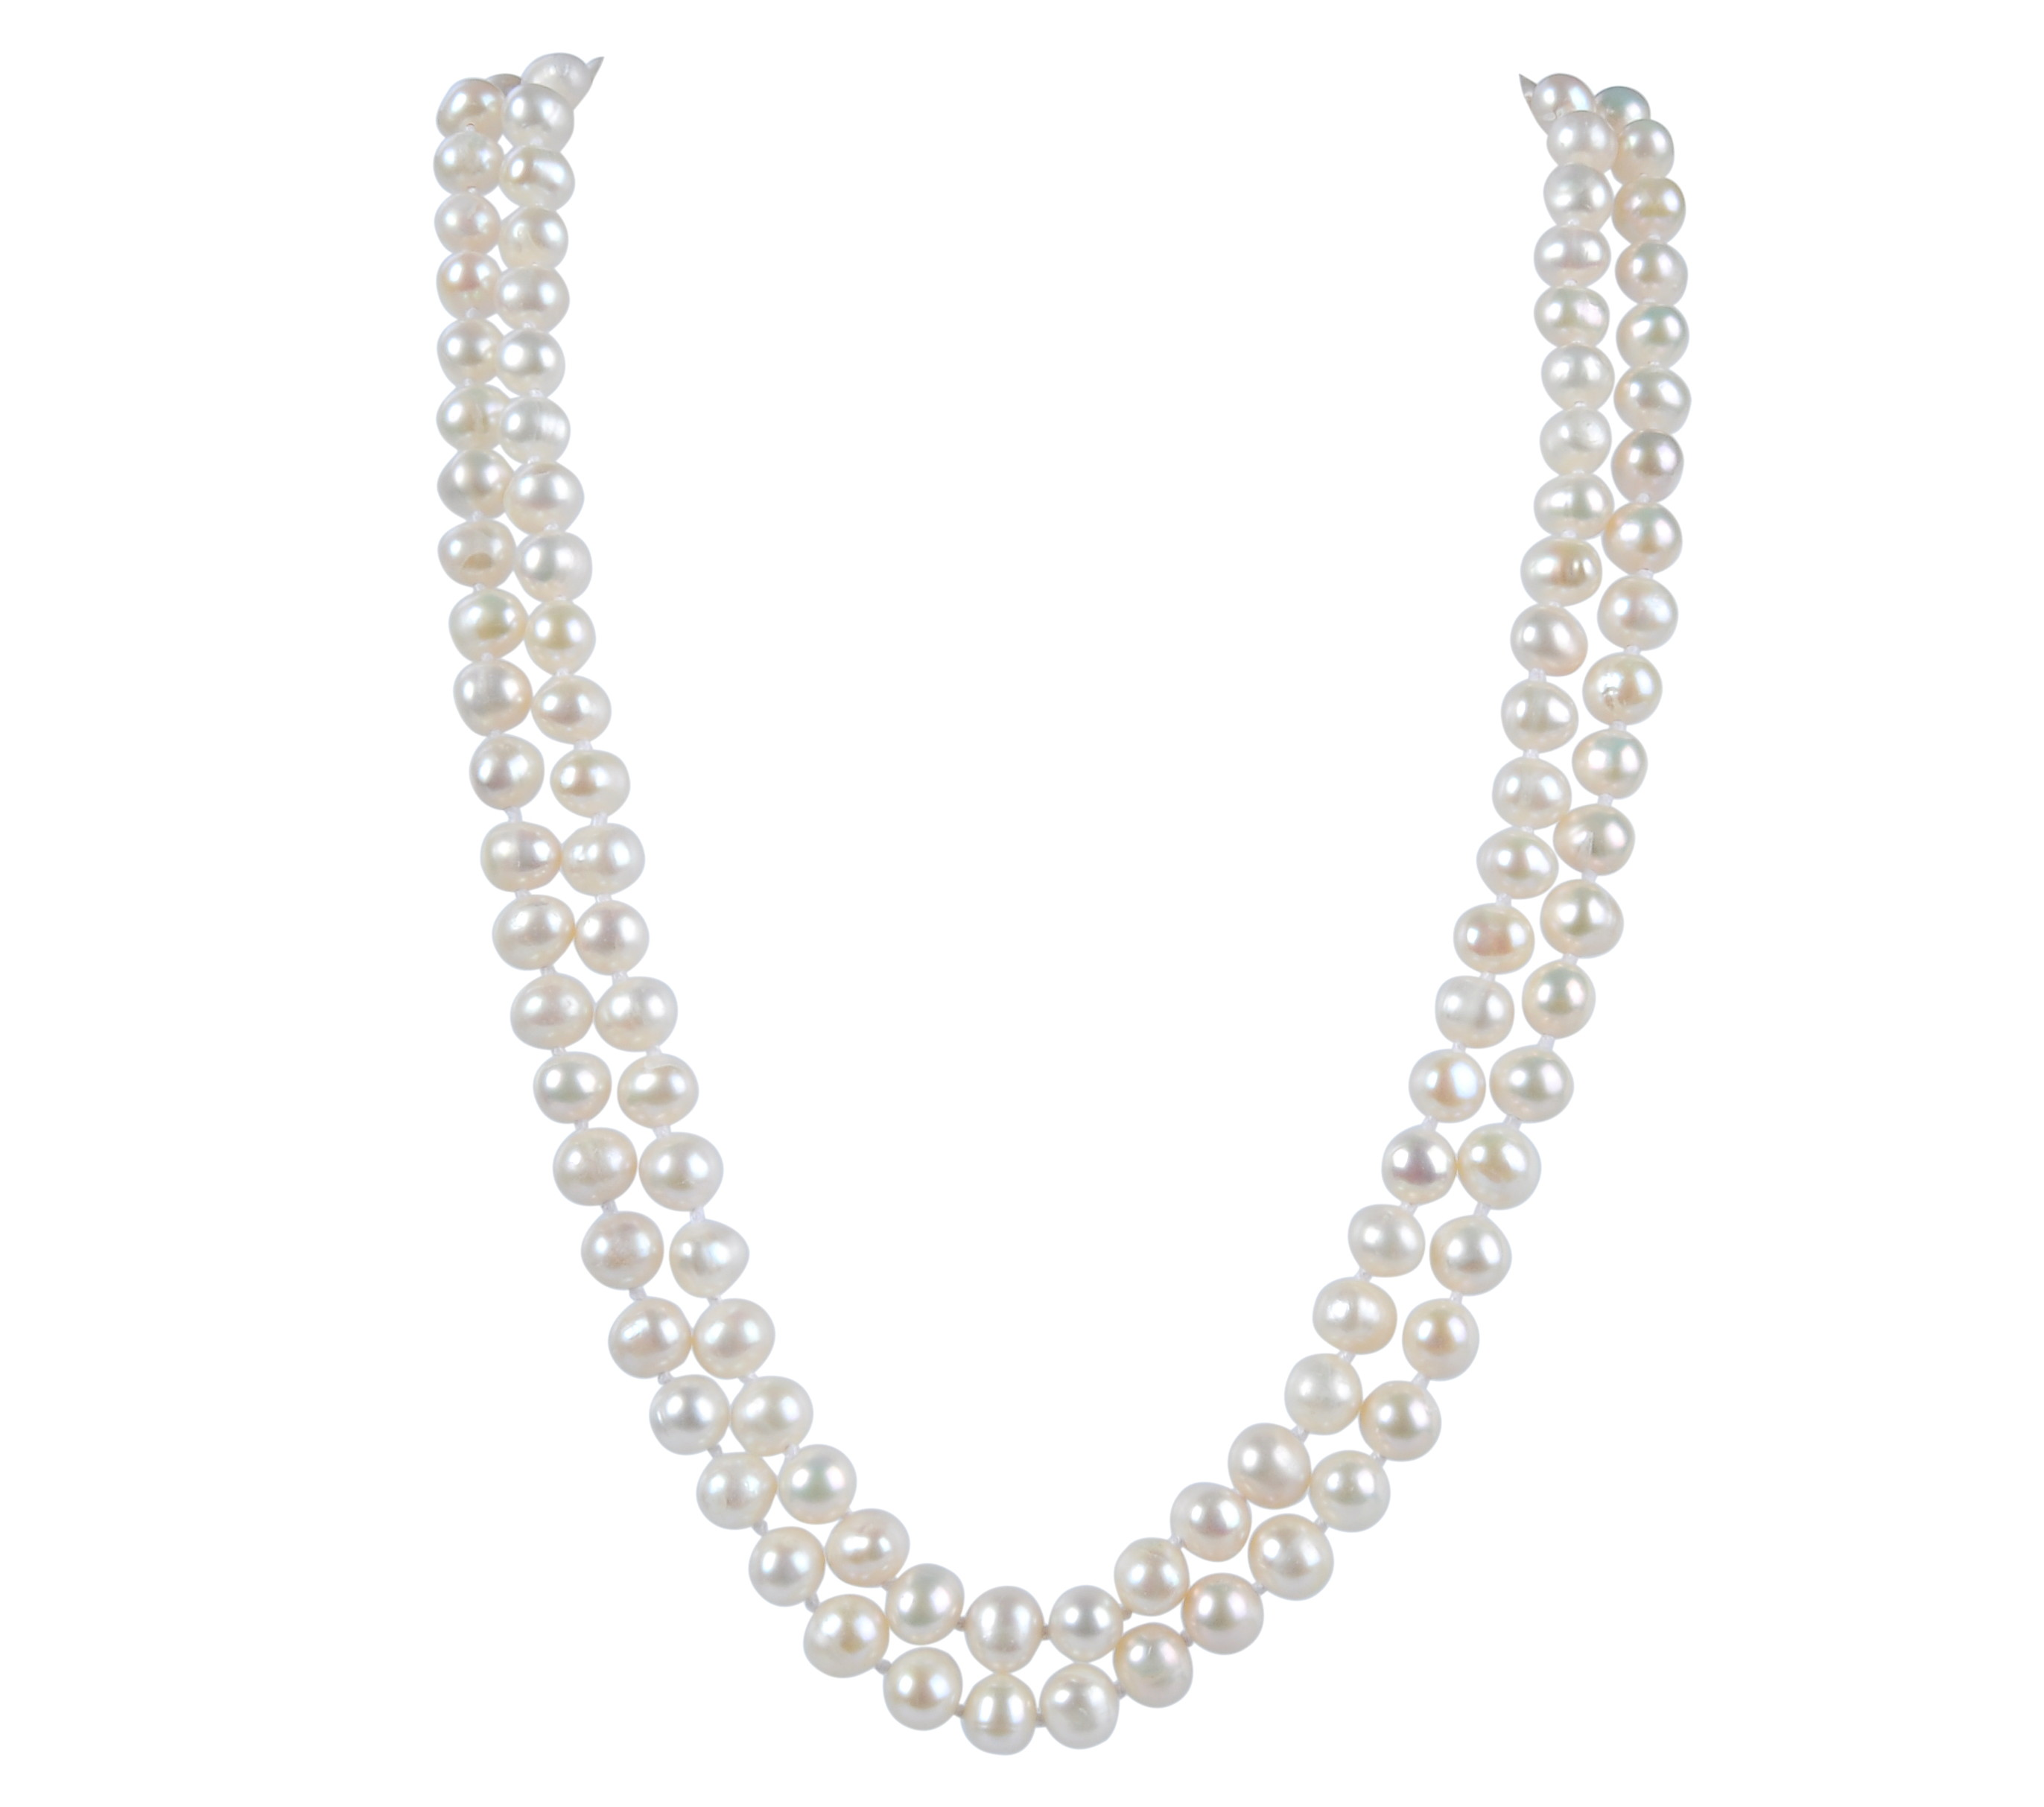 7.5 mm AA+ Two Row Freshwater White Pearl Necklace -nk142